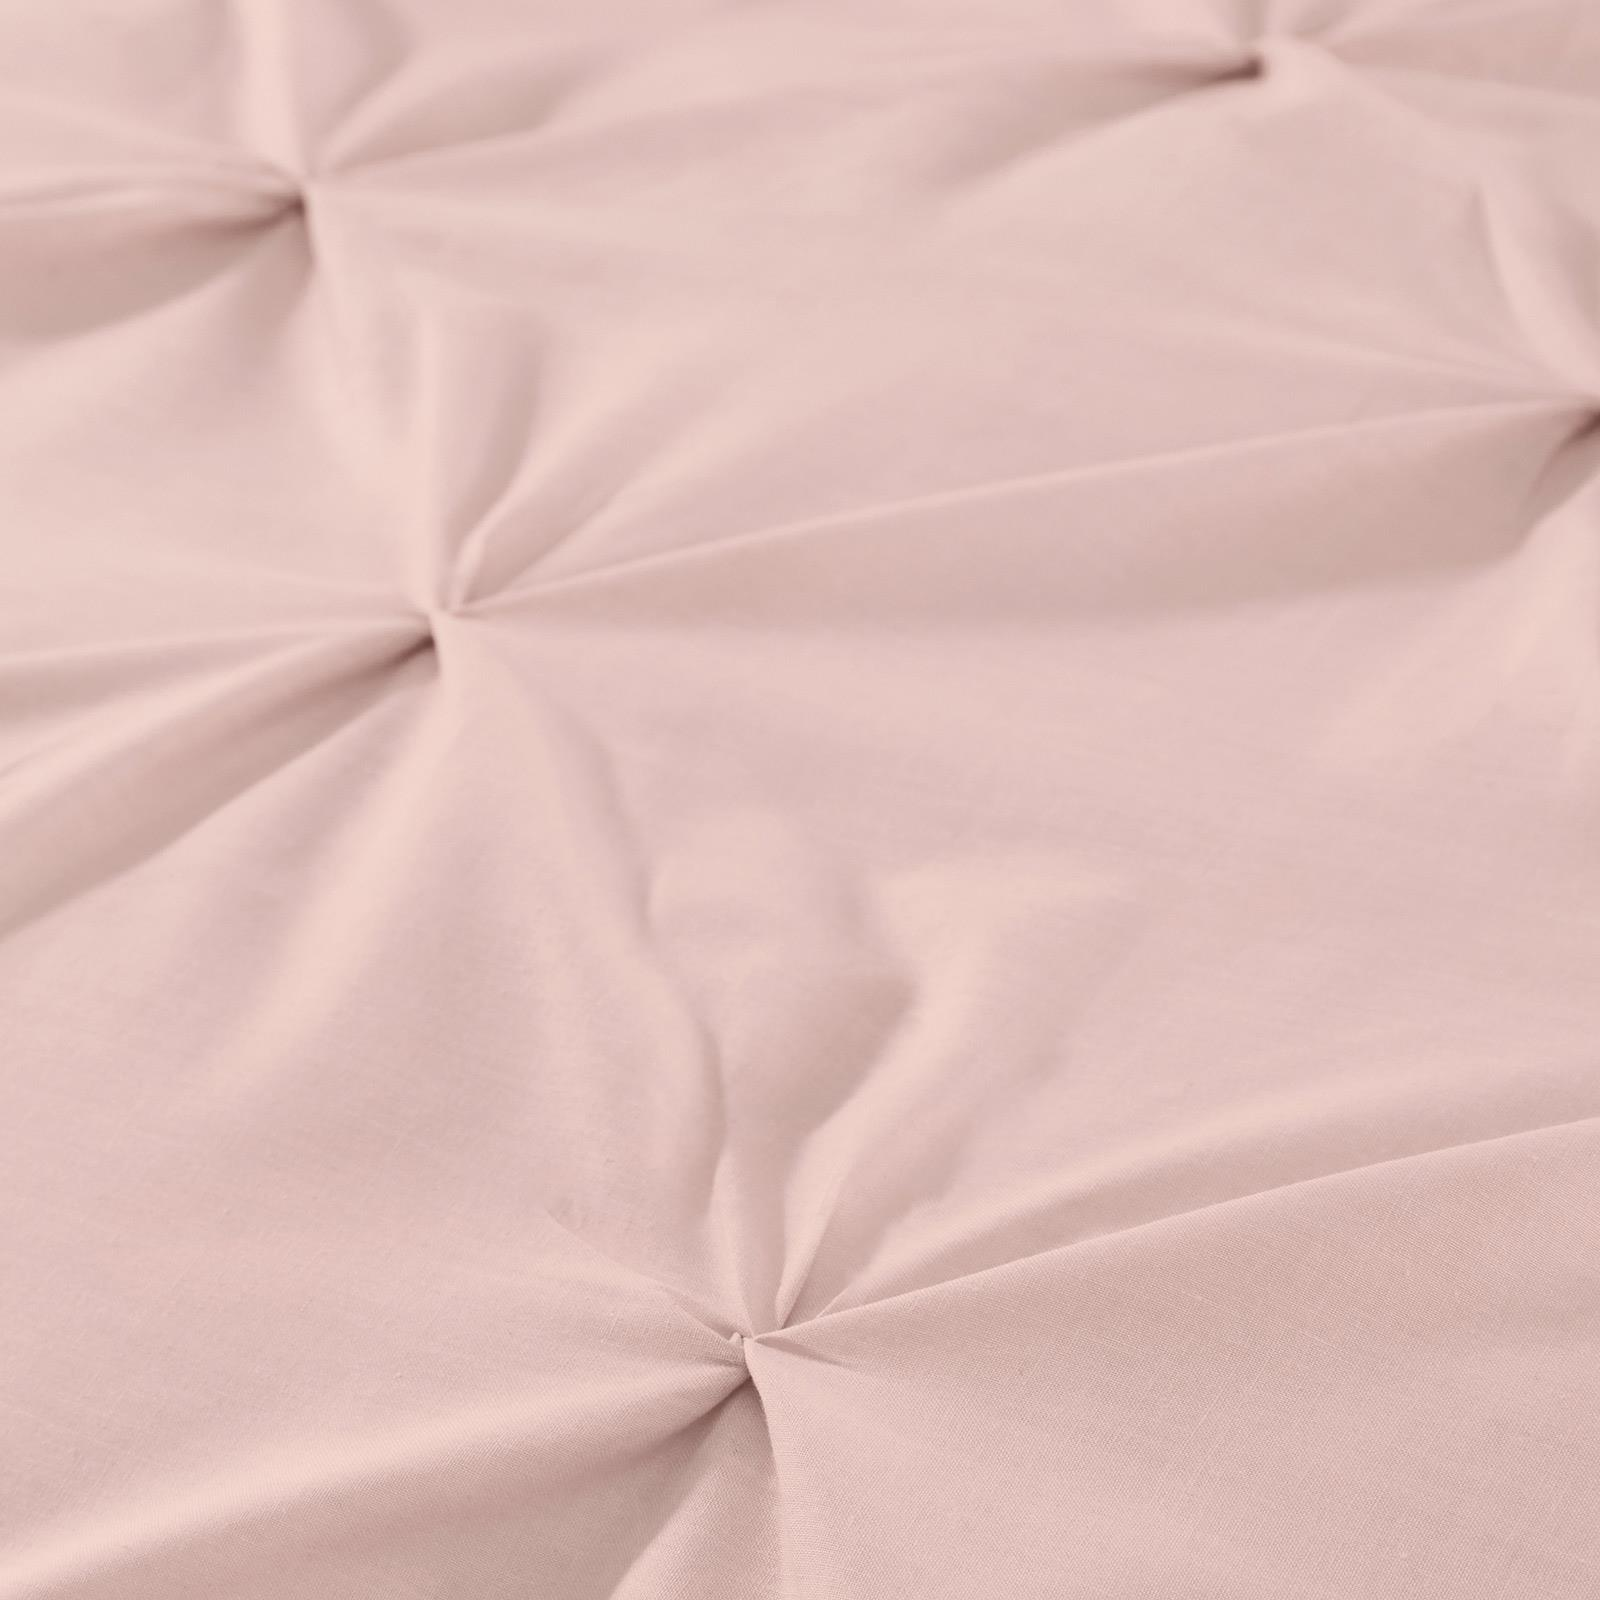 Blush-Duvet-Covers-Ruched-Pin-Tuck-Stitched-Plain-Pink-Quilt-Cover-Bedding-Sets thumbnail 15